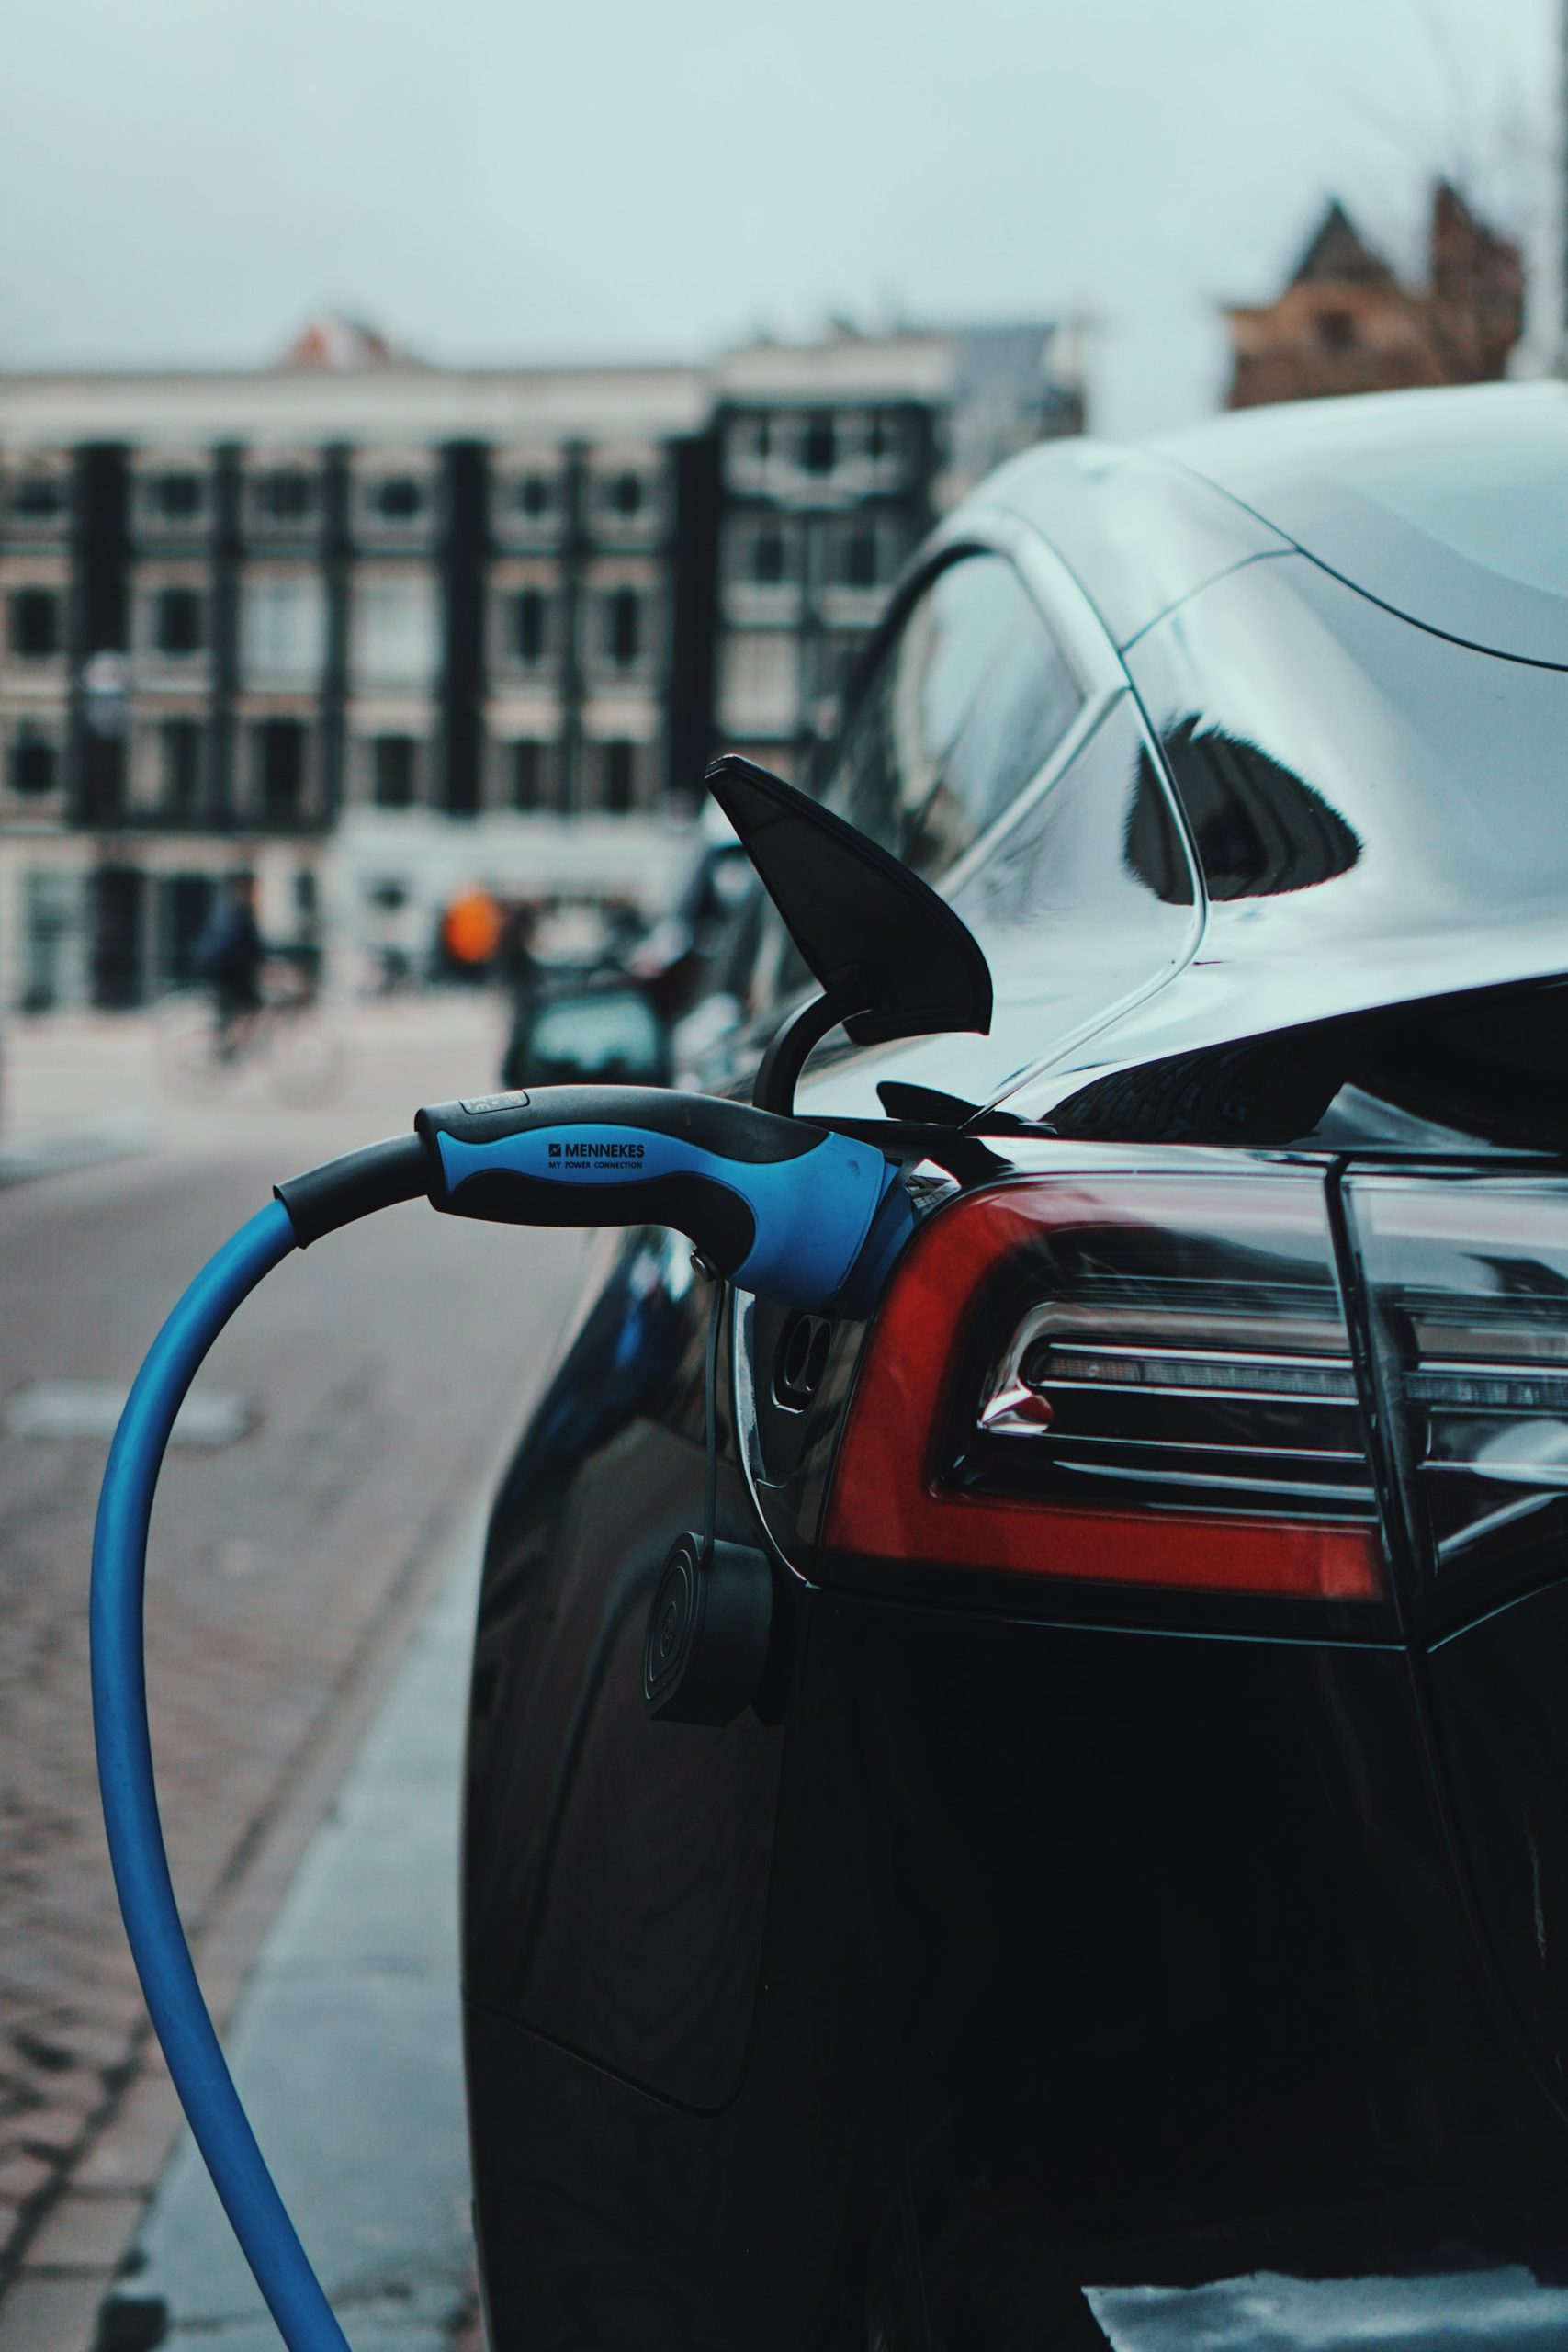 Electric Vehicle Business Cars Article Image